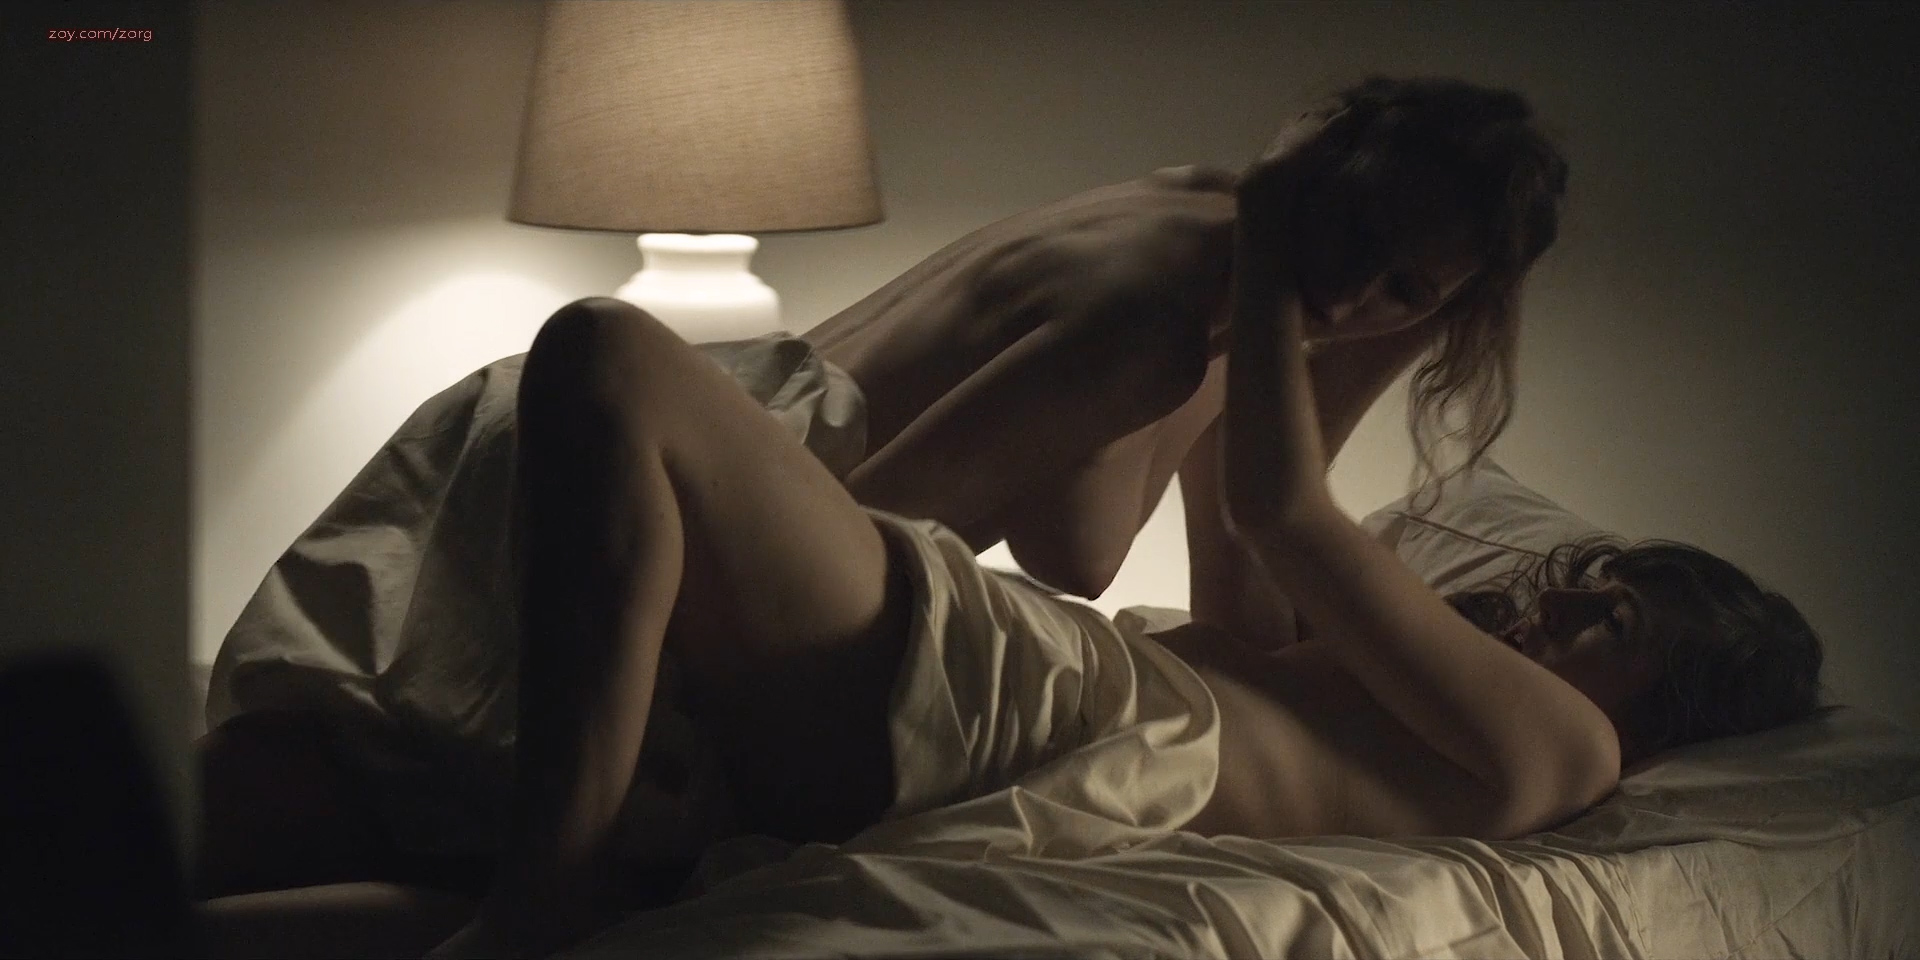 Rachel-Brosnahan-nude-side-boob-House-Of-Cards-2013-s02e6-HD-1080p-5.jpg